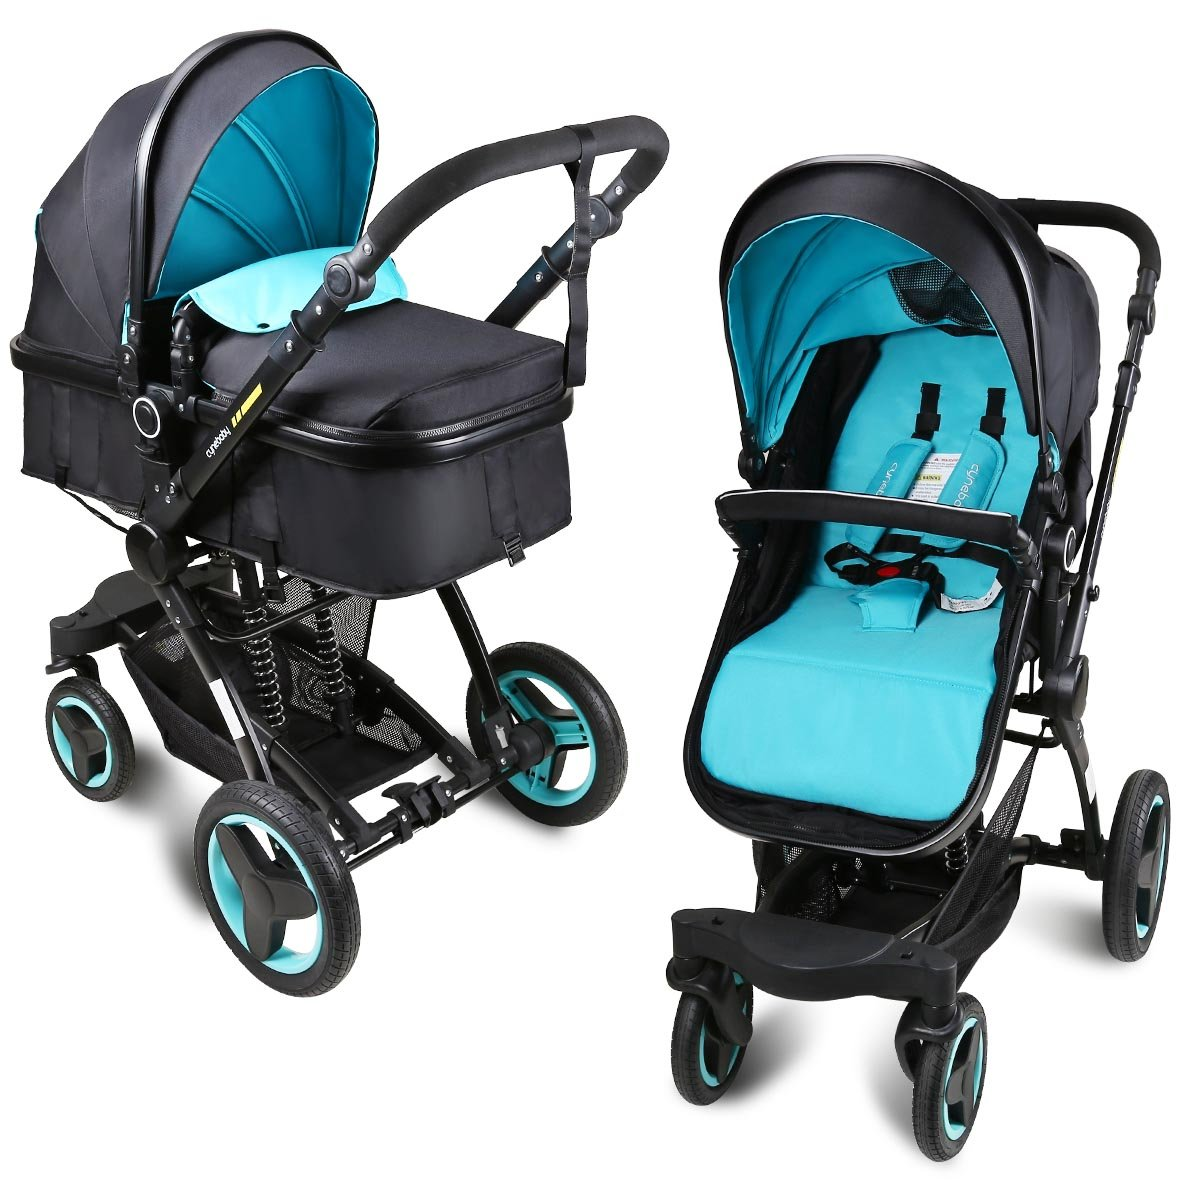 Baby stroller travel system folding pram pushchair infant toddler carriage high landscape (blue) by Cynebaby (Image #1)